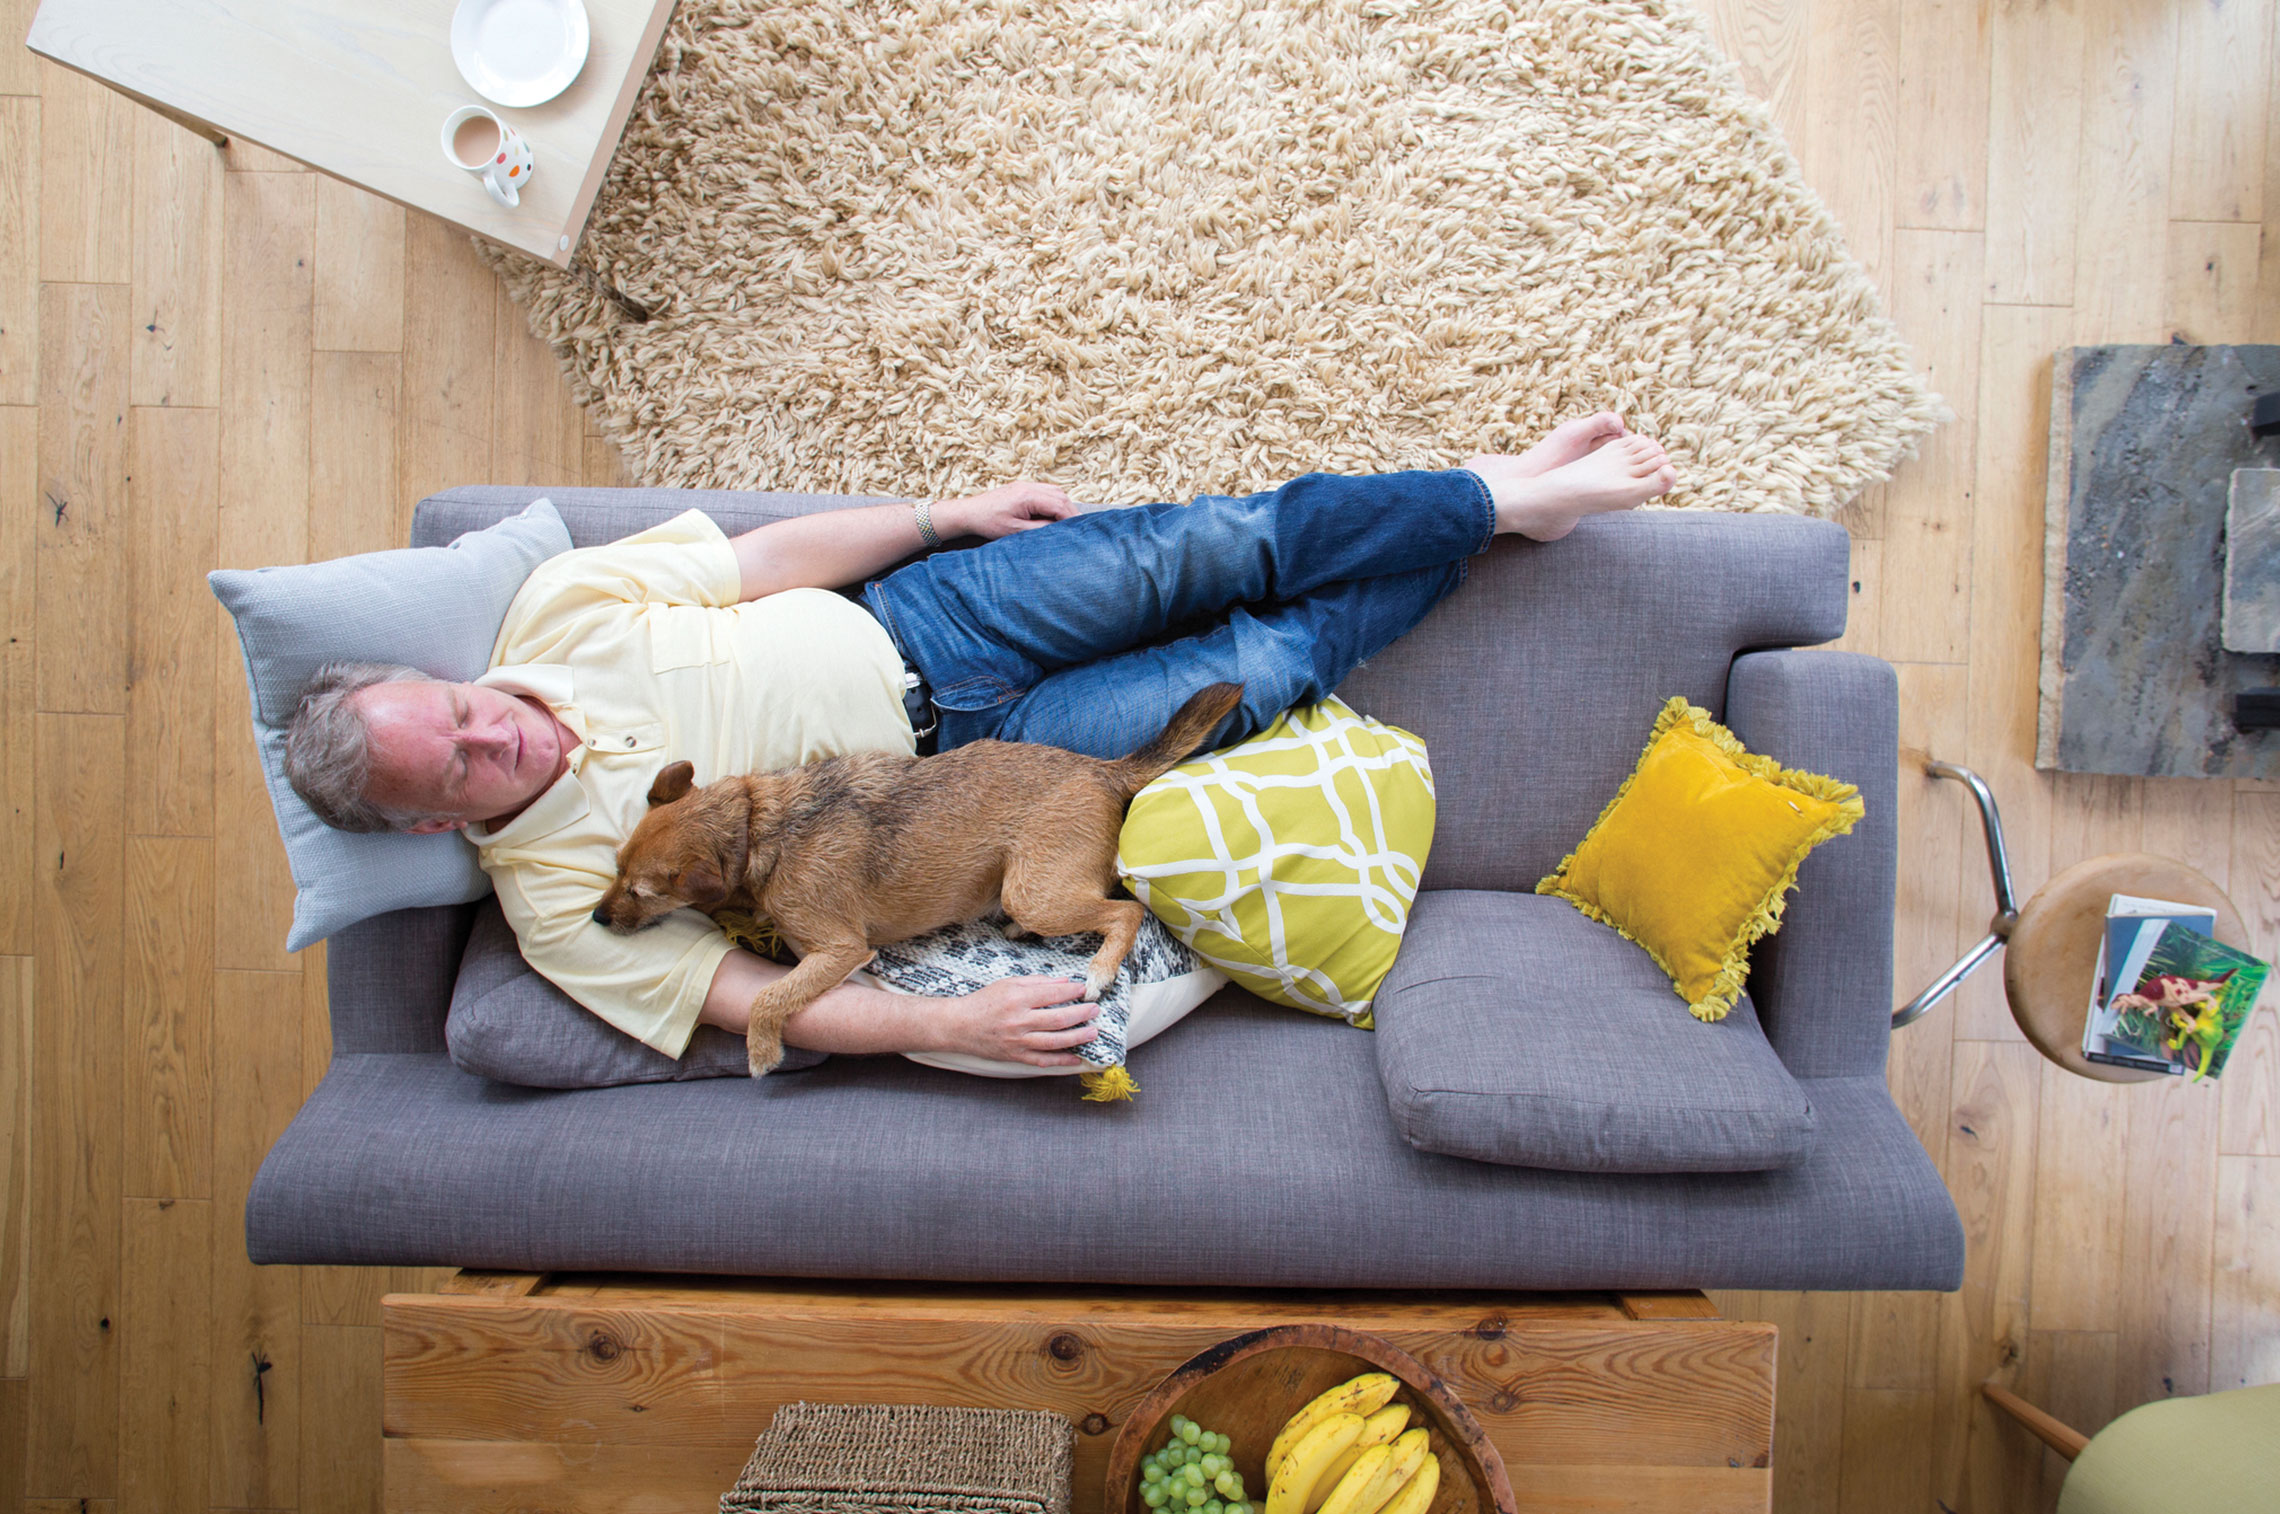 Caught Napping? It Might Just Be Good for You